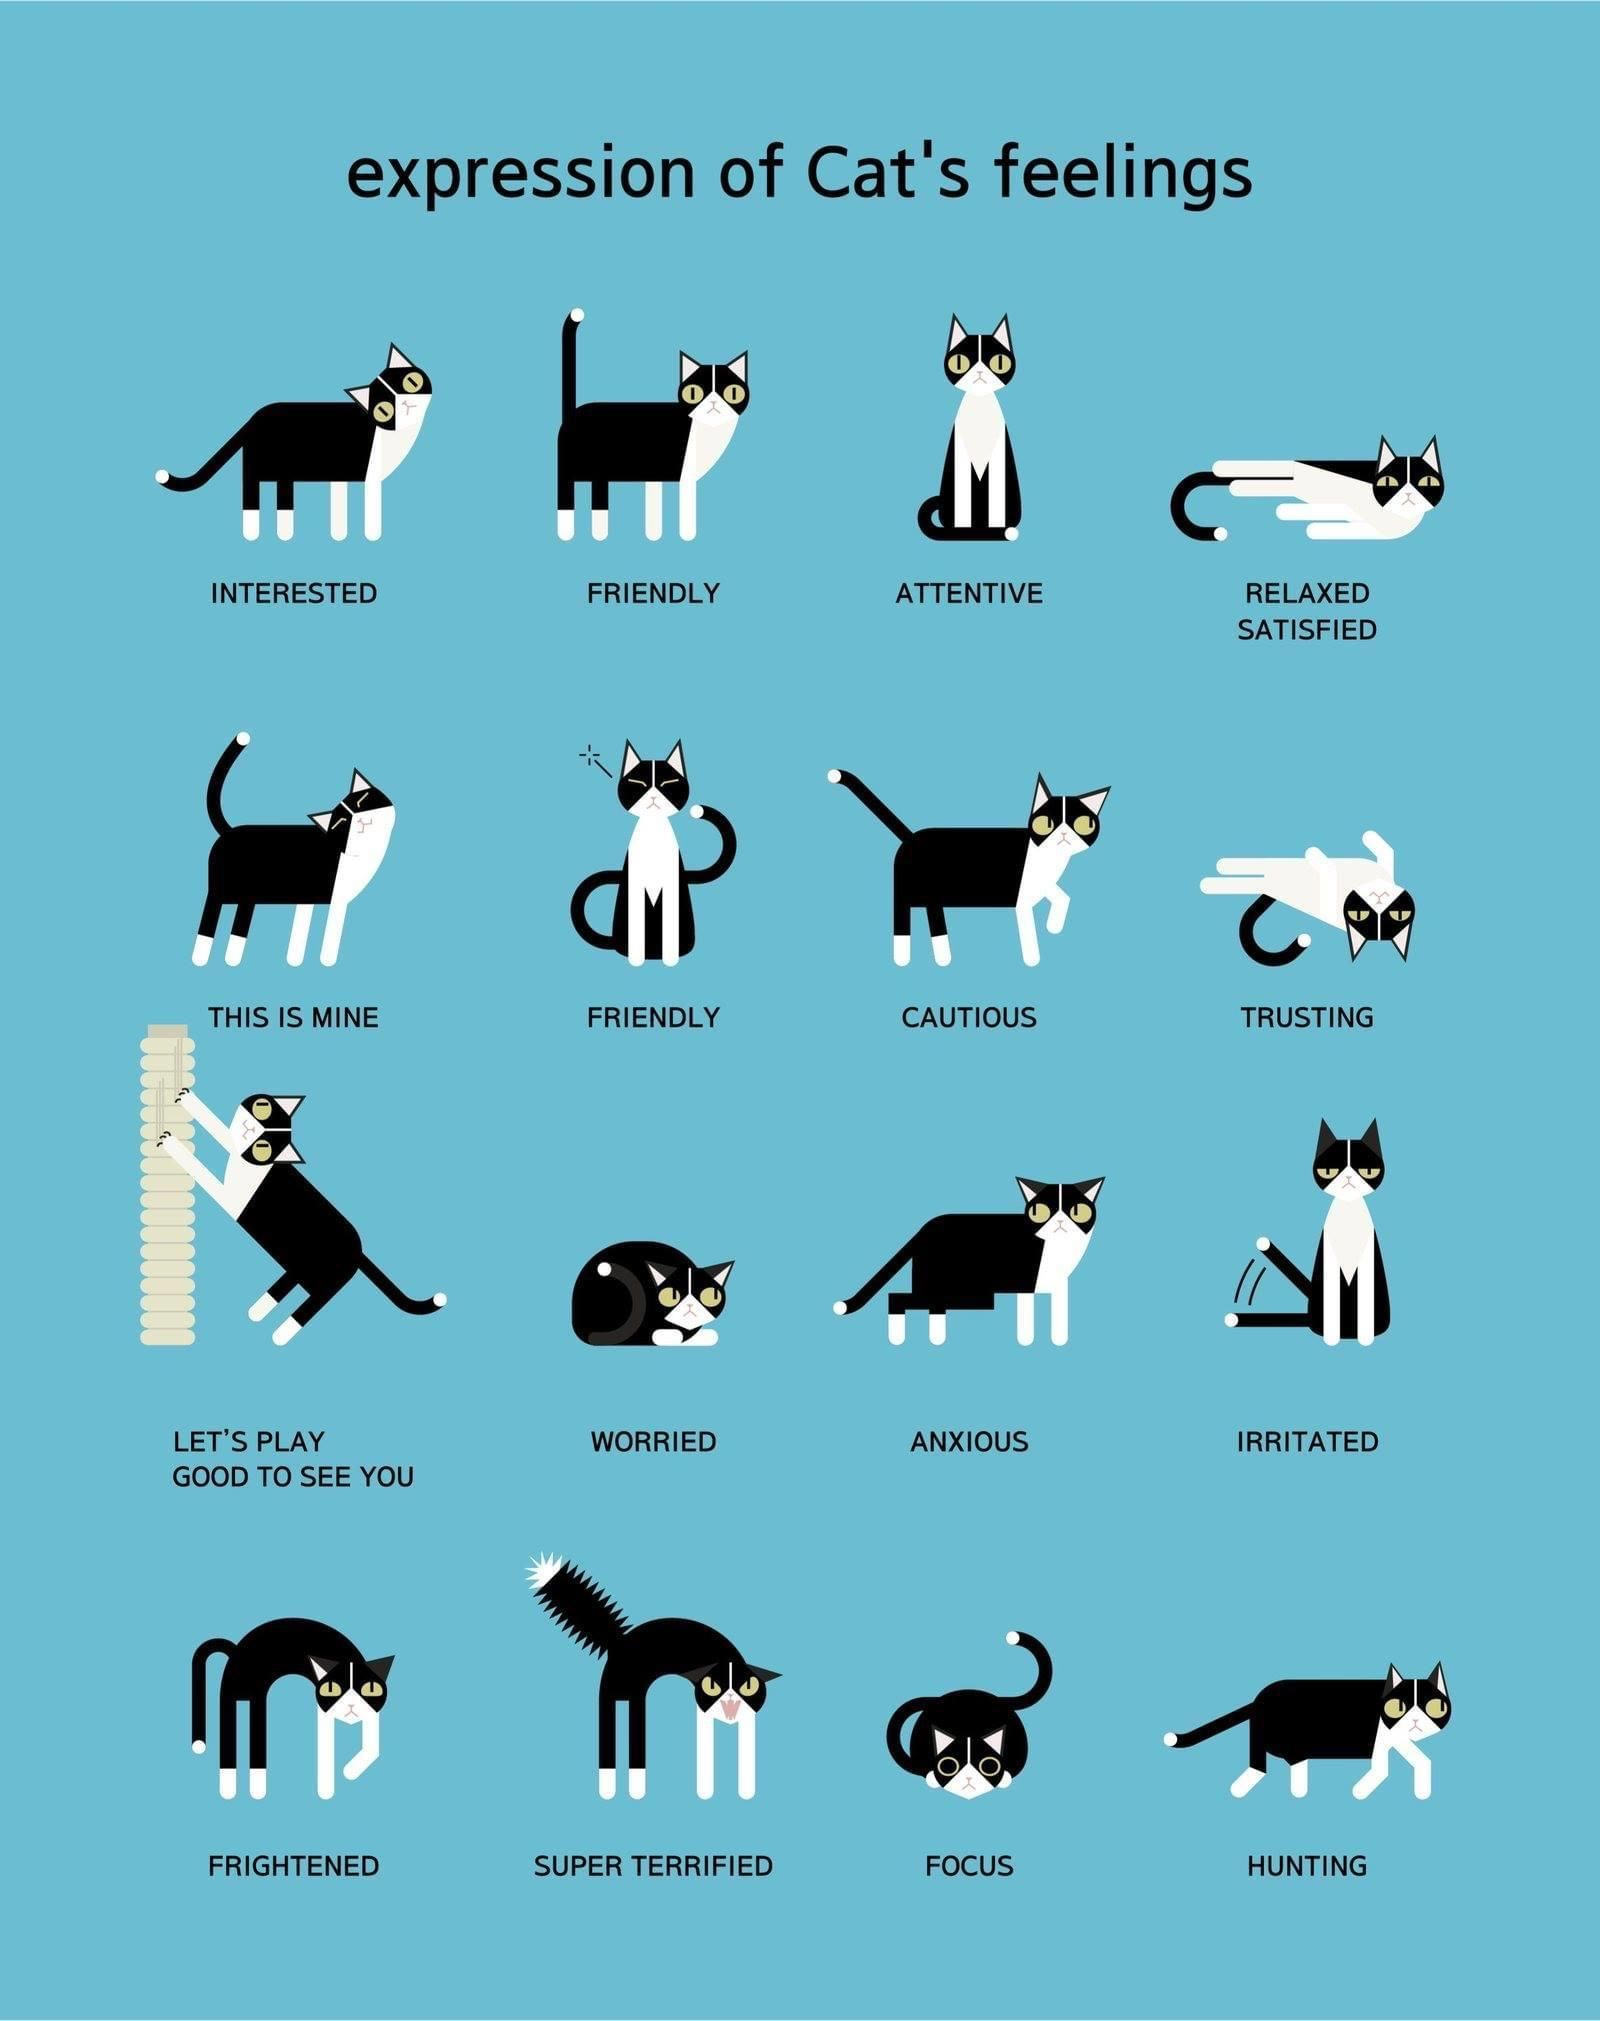 How To Stop Your Kitten From Biting Cats Cat Behavior Kittens Kitten Training Biting Cats Stop Biting Cats Cat Behavior Cat Biting Kitten Biting